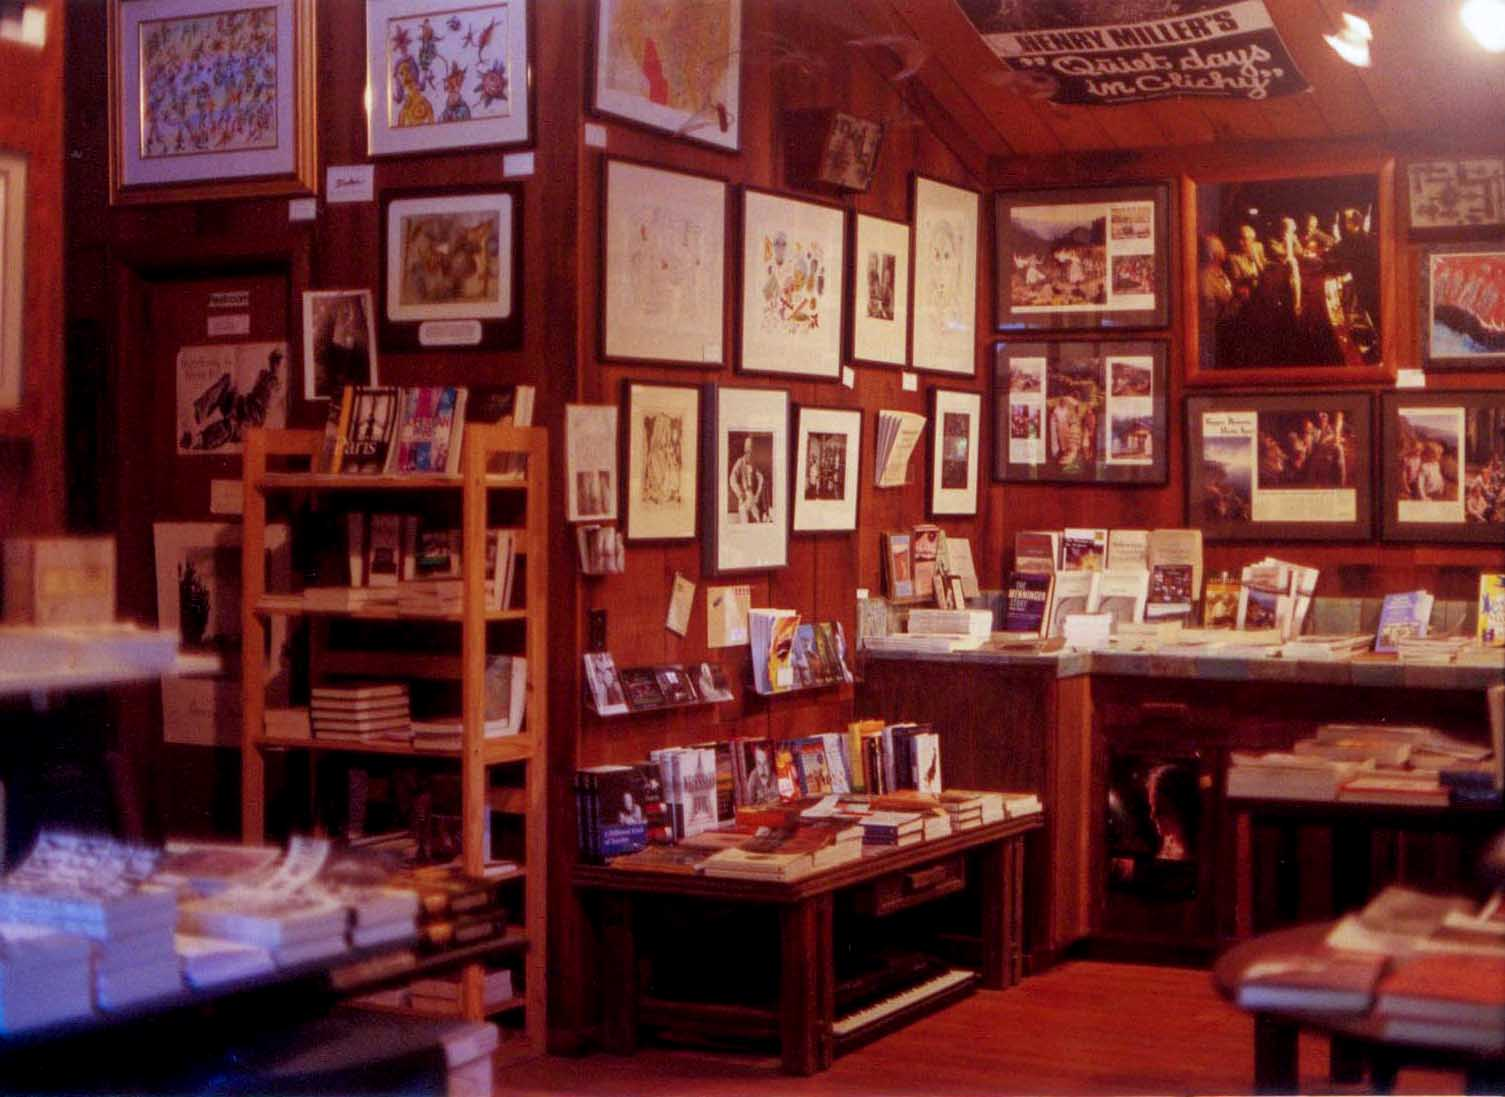 Inside the Henry Miller Library in Big Sur, circa 2002. c. Kimberly Kradel